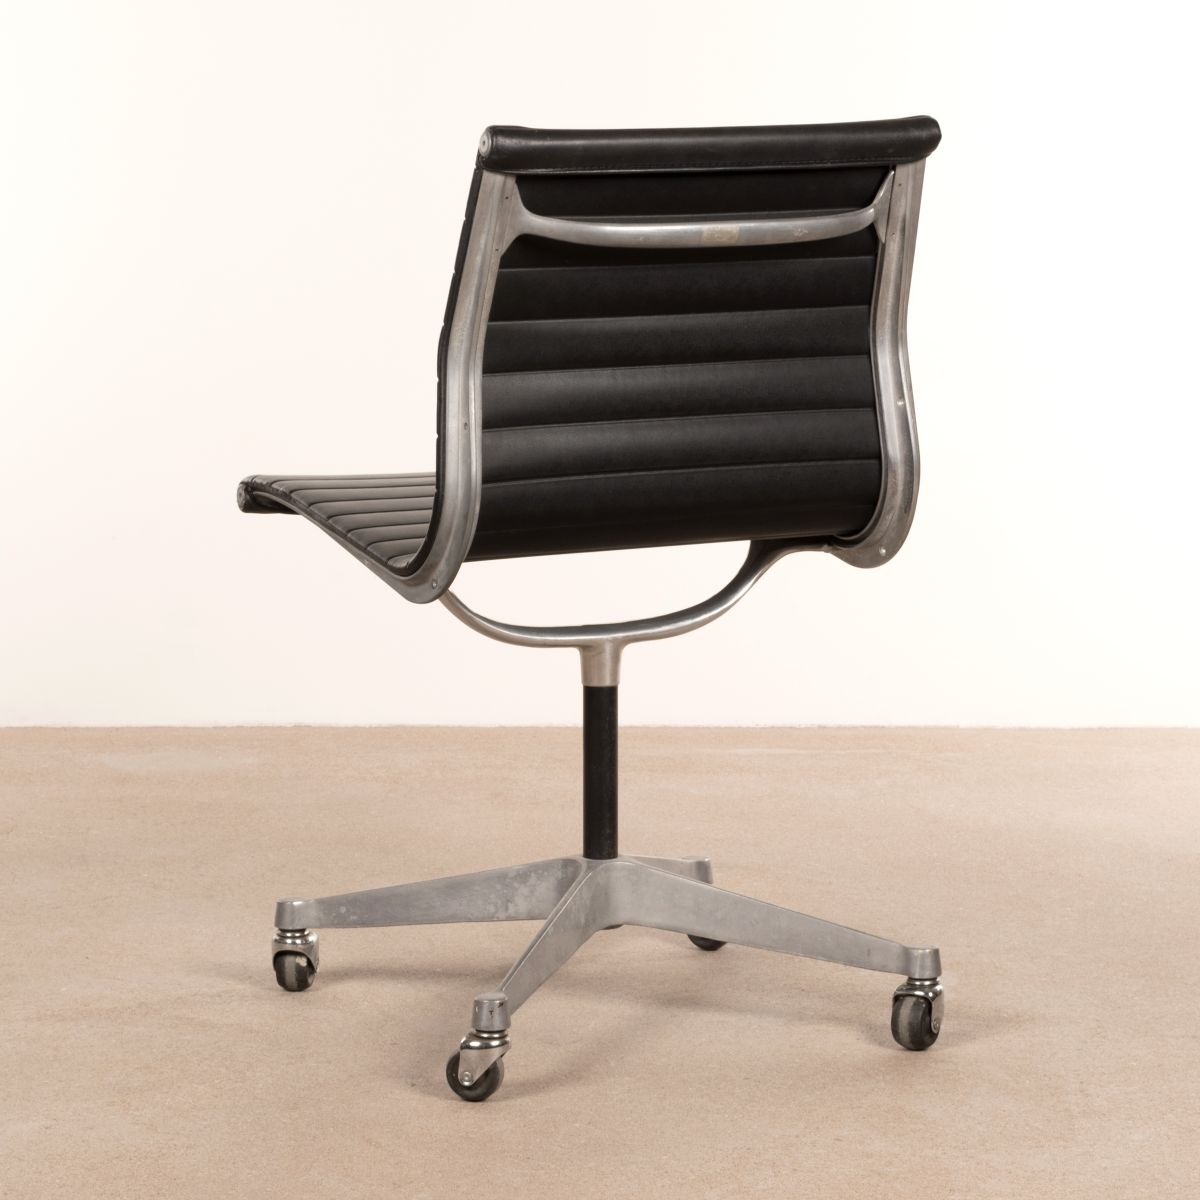 Eames Desk Chair Black Desk Chair By Charles And Ray Eames For Herman Miller